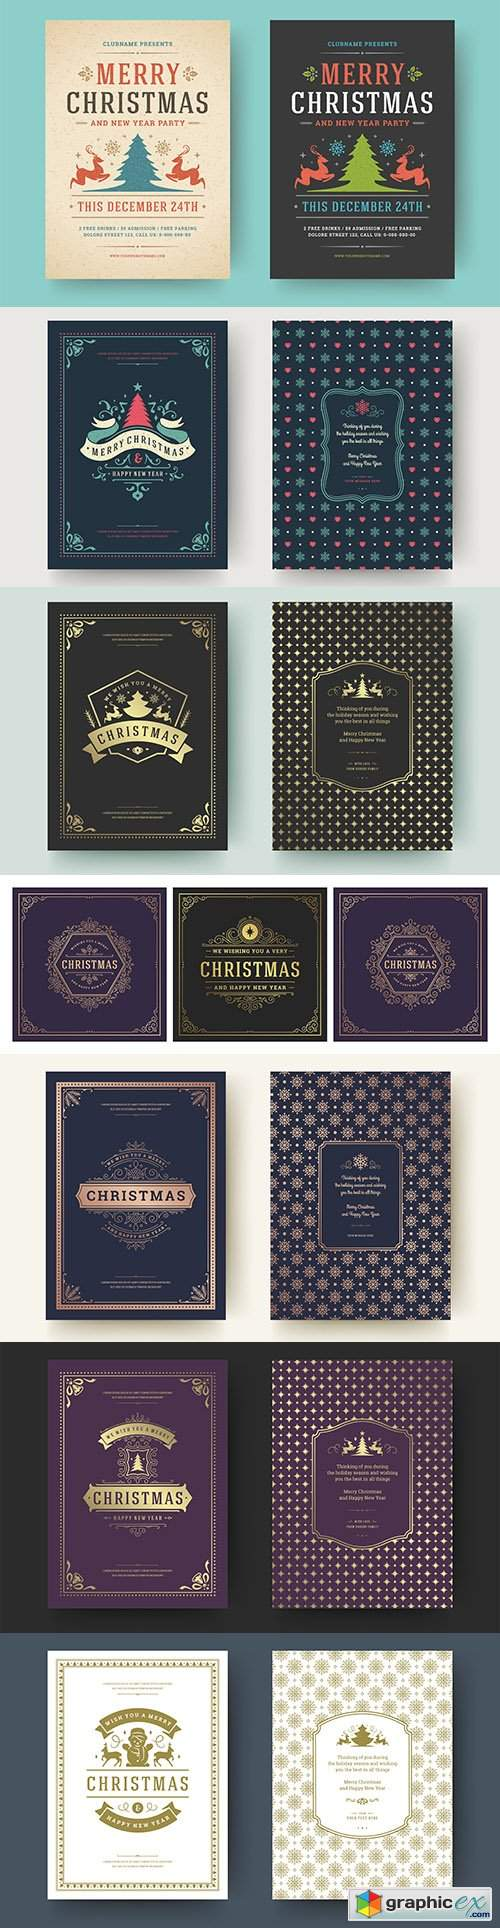 Christmas cards with vintage elements design template